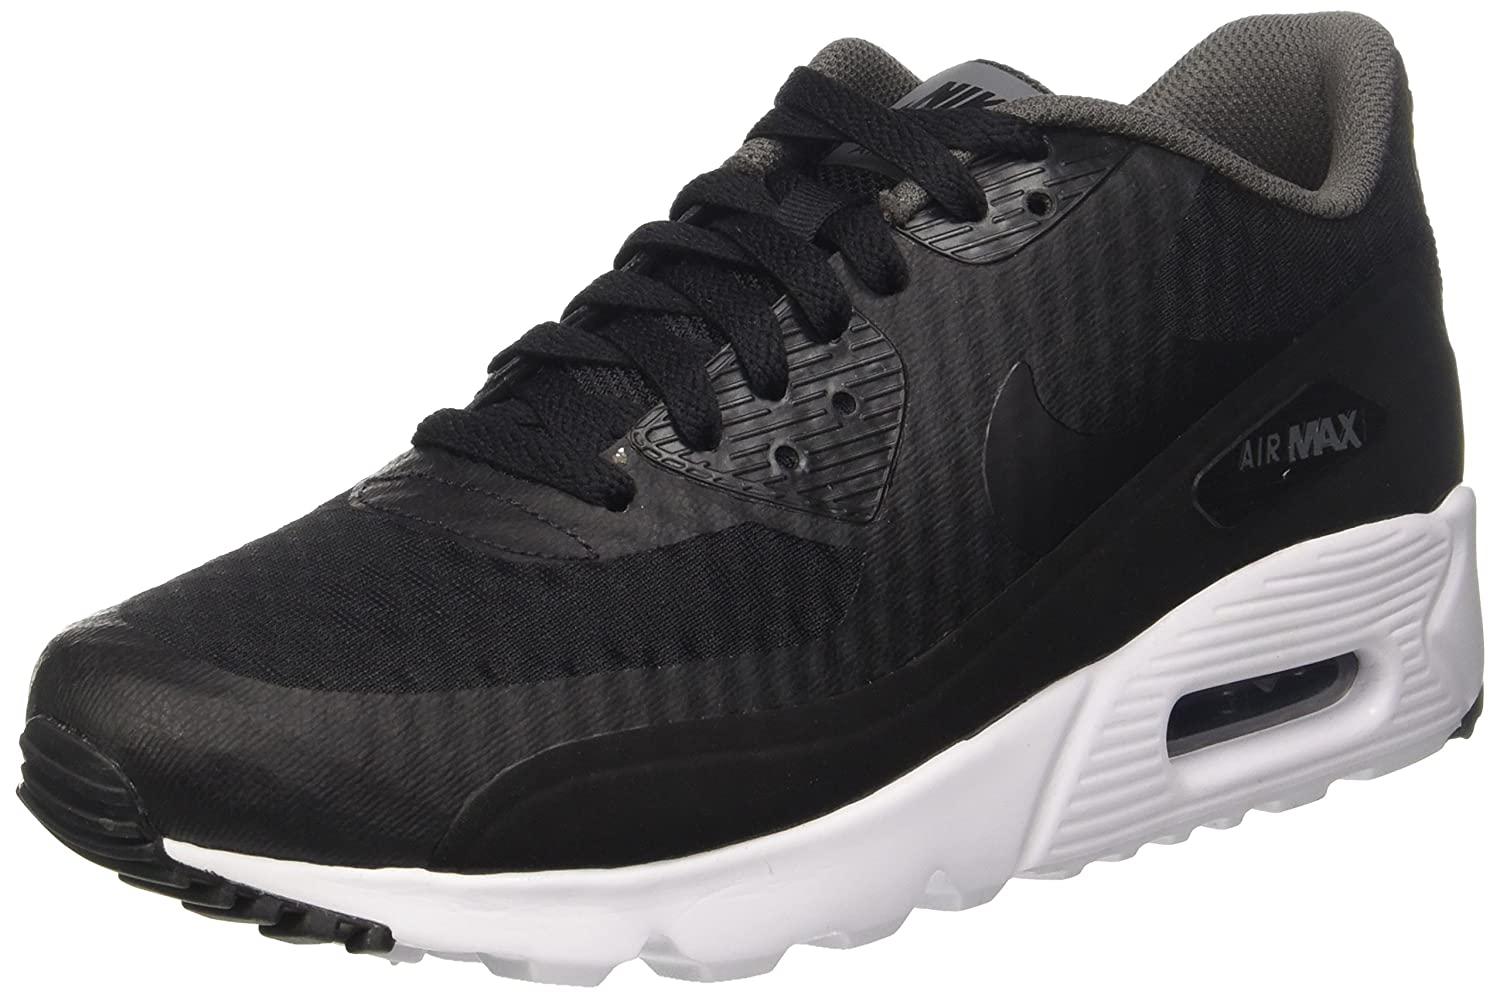 Helpful Nike Air Max 90 Ultra Essential Dark Grey White Black 819474 013 Men's Sport Running Shoes Trainers